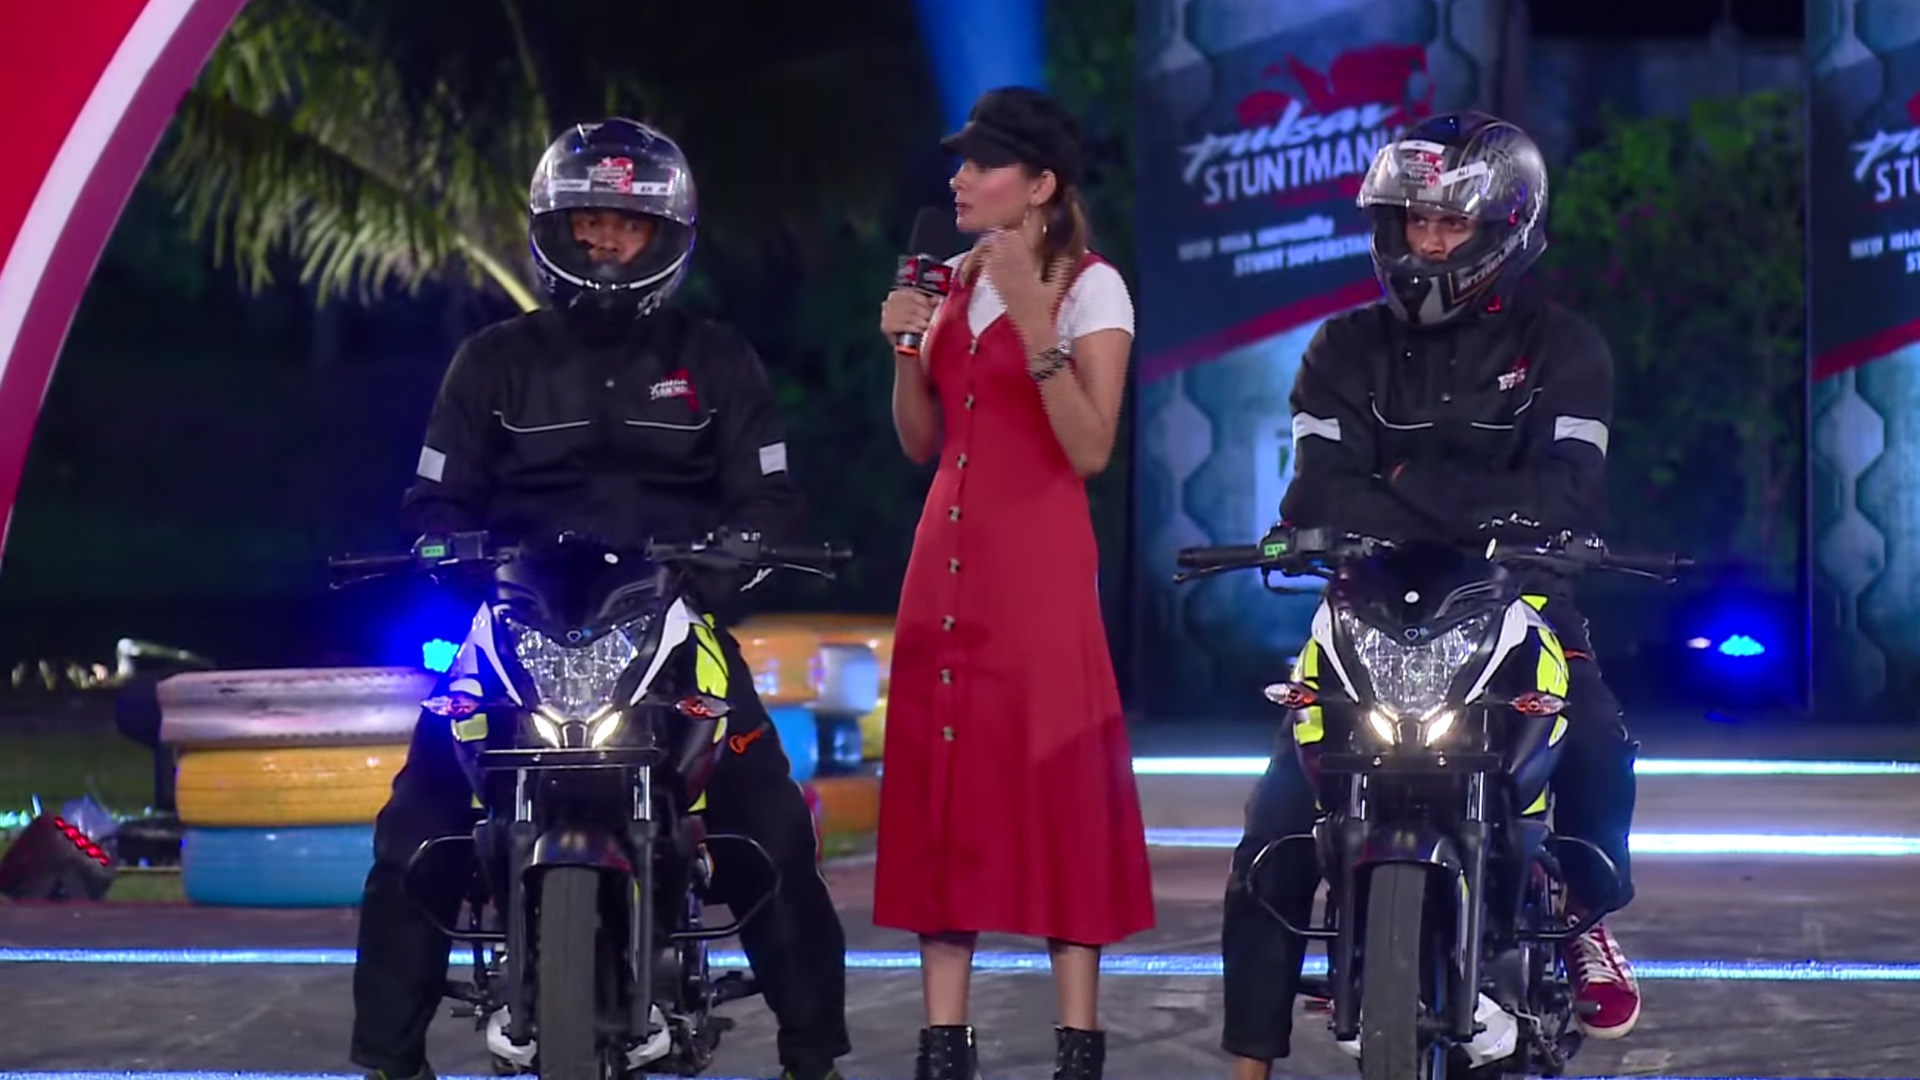 Pulsar Stuntmania 2019 Ready to role